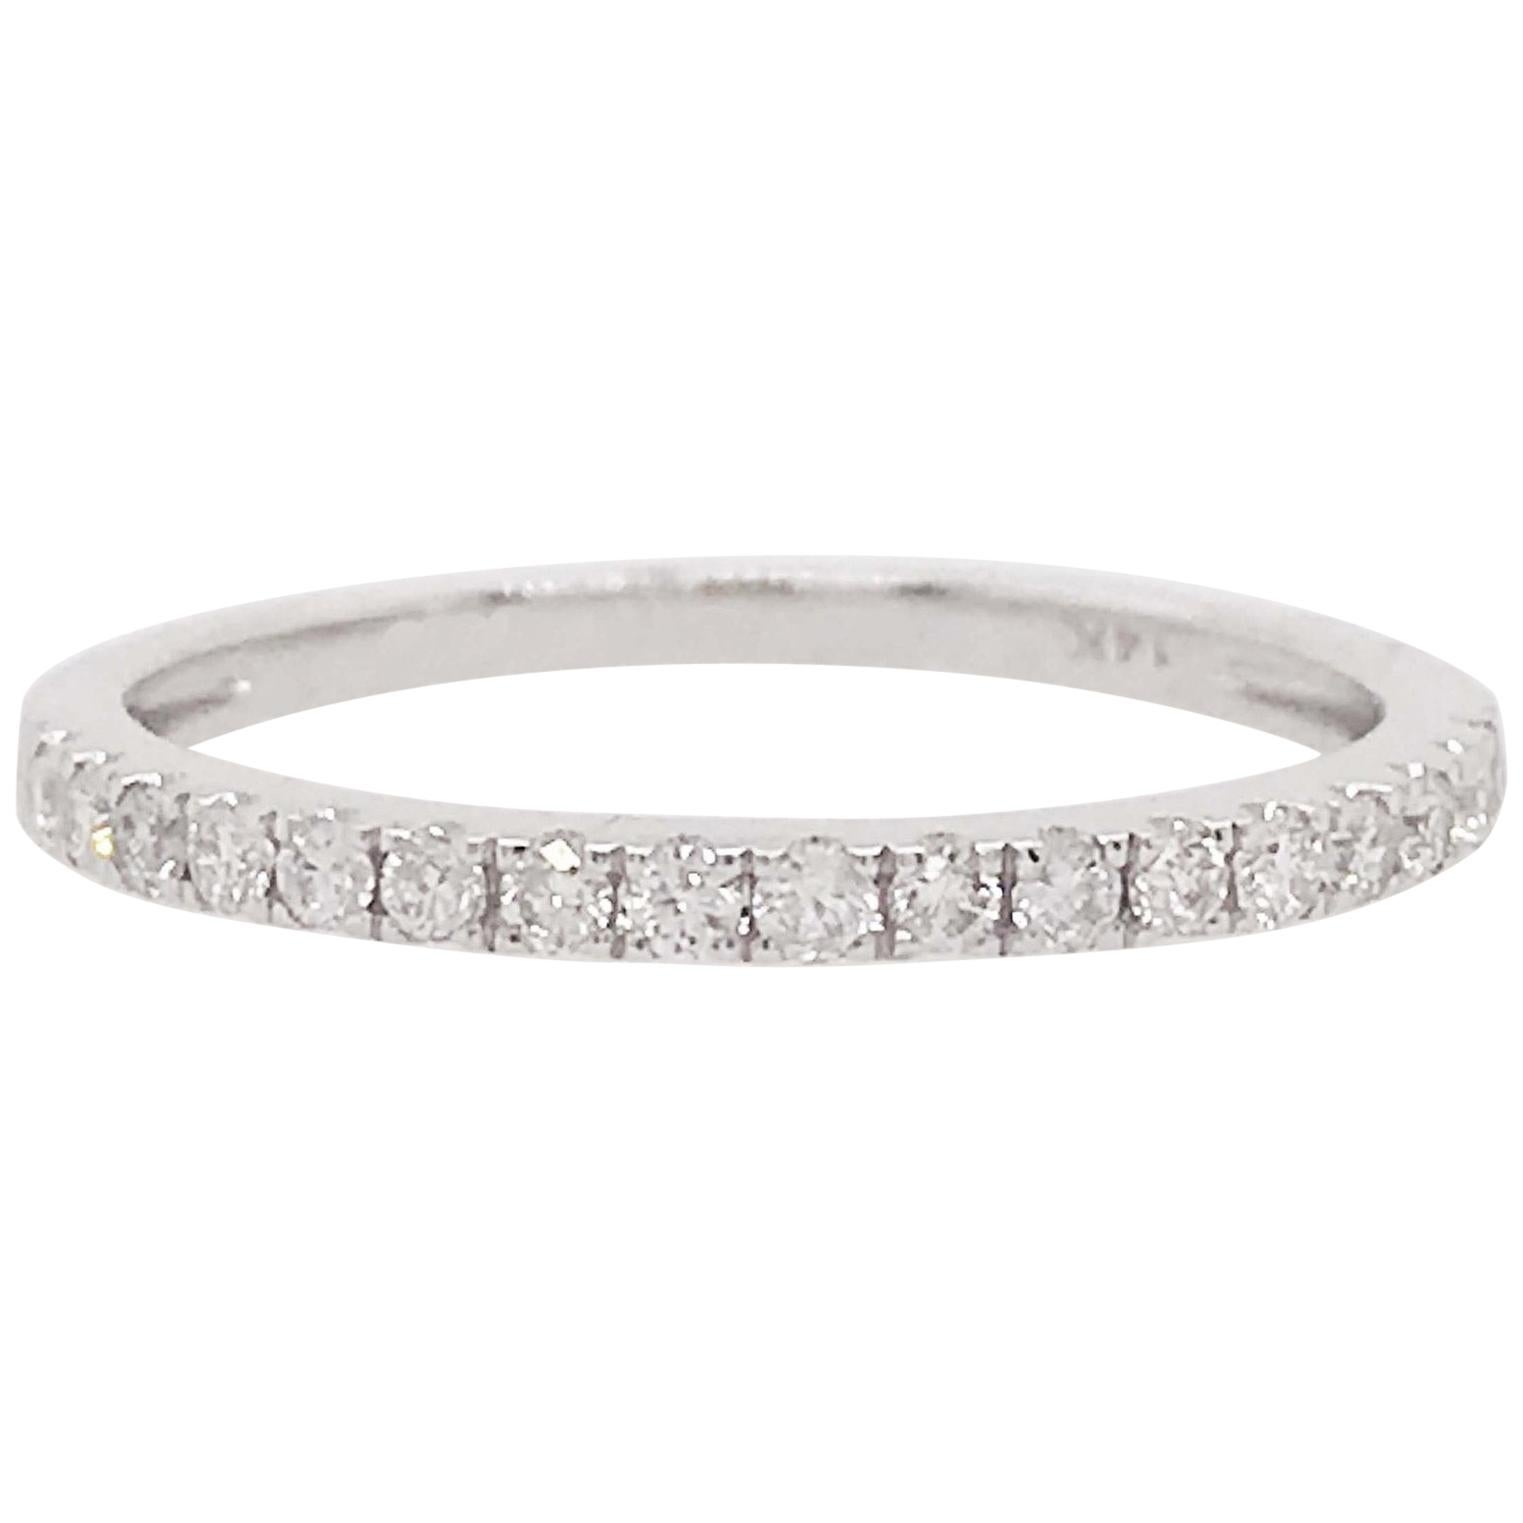 Diamond Half Band 0.25 Carat, 1/4 ct, Diamond Wedding Band 14K White Gold Any SZ